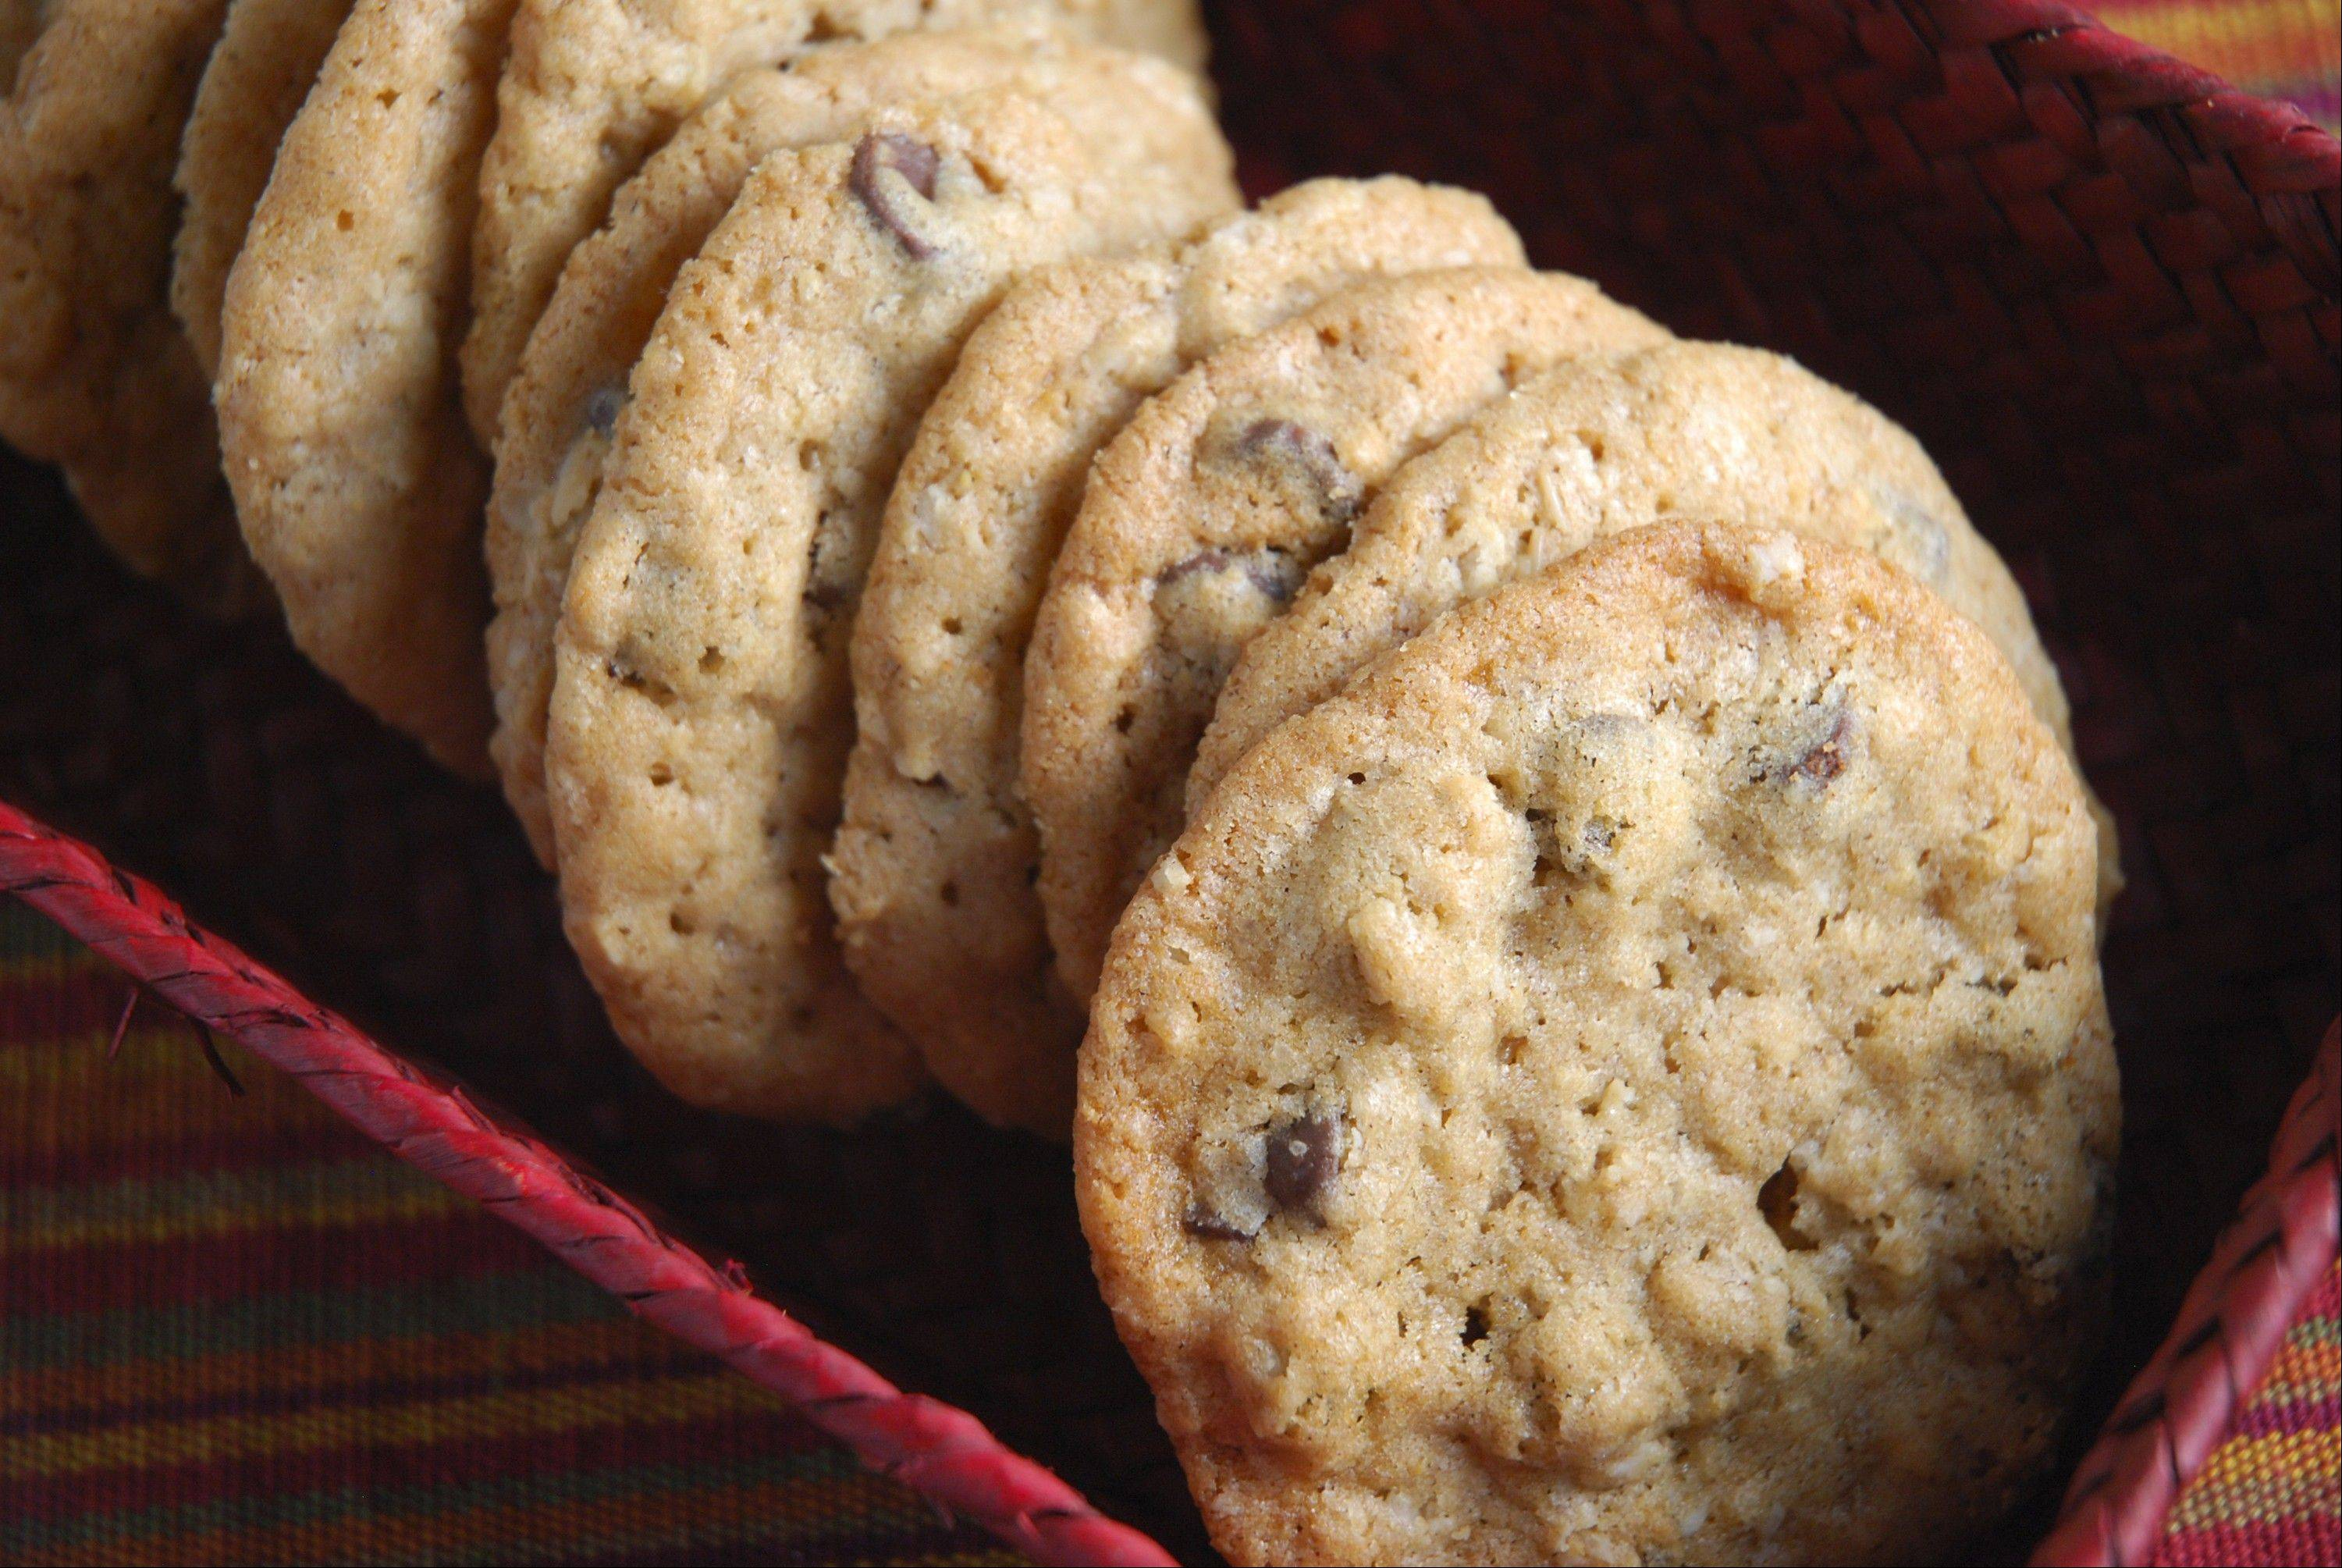 Holidays the perfect time to try 'best ever' cookies